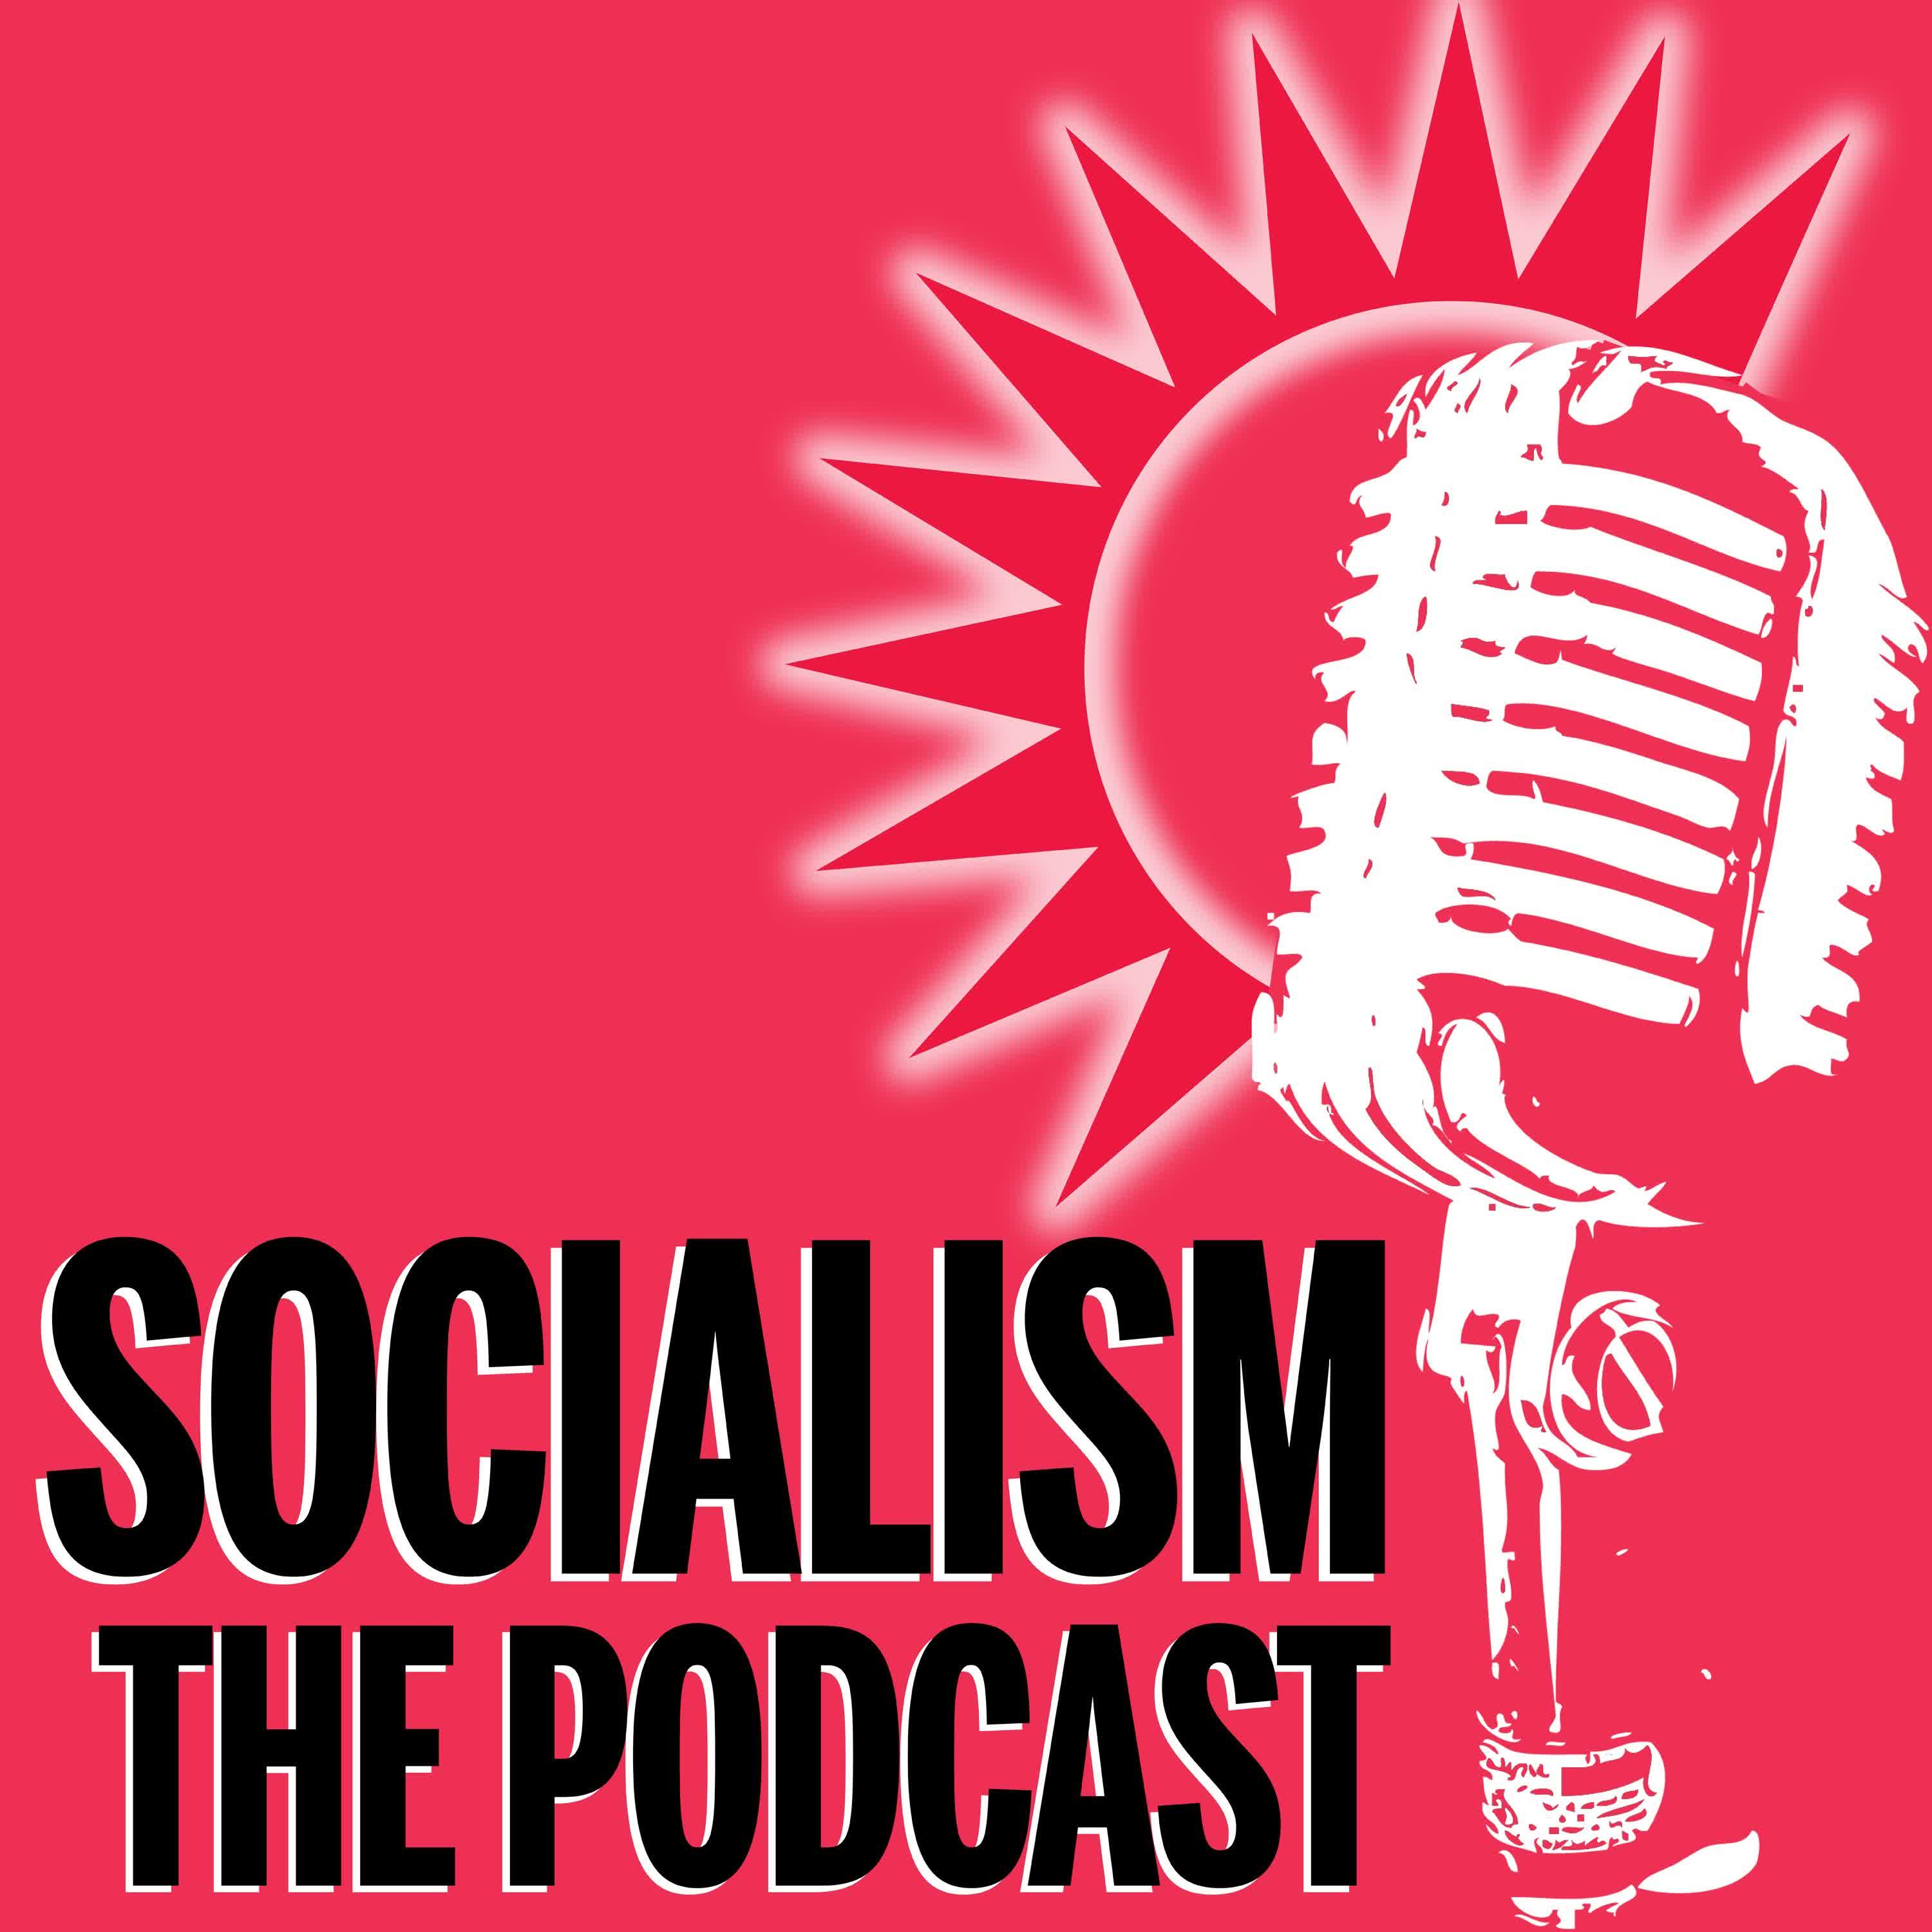 71. A socialist youth charter